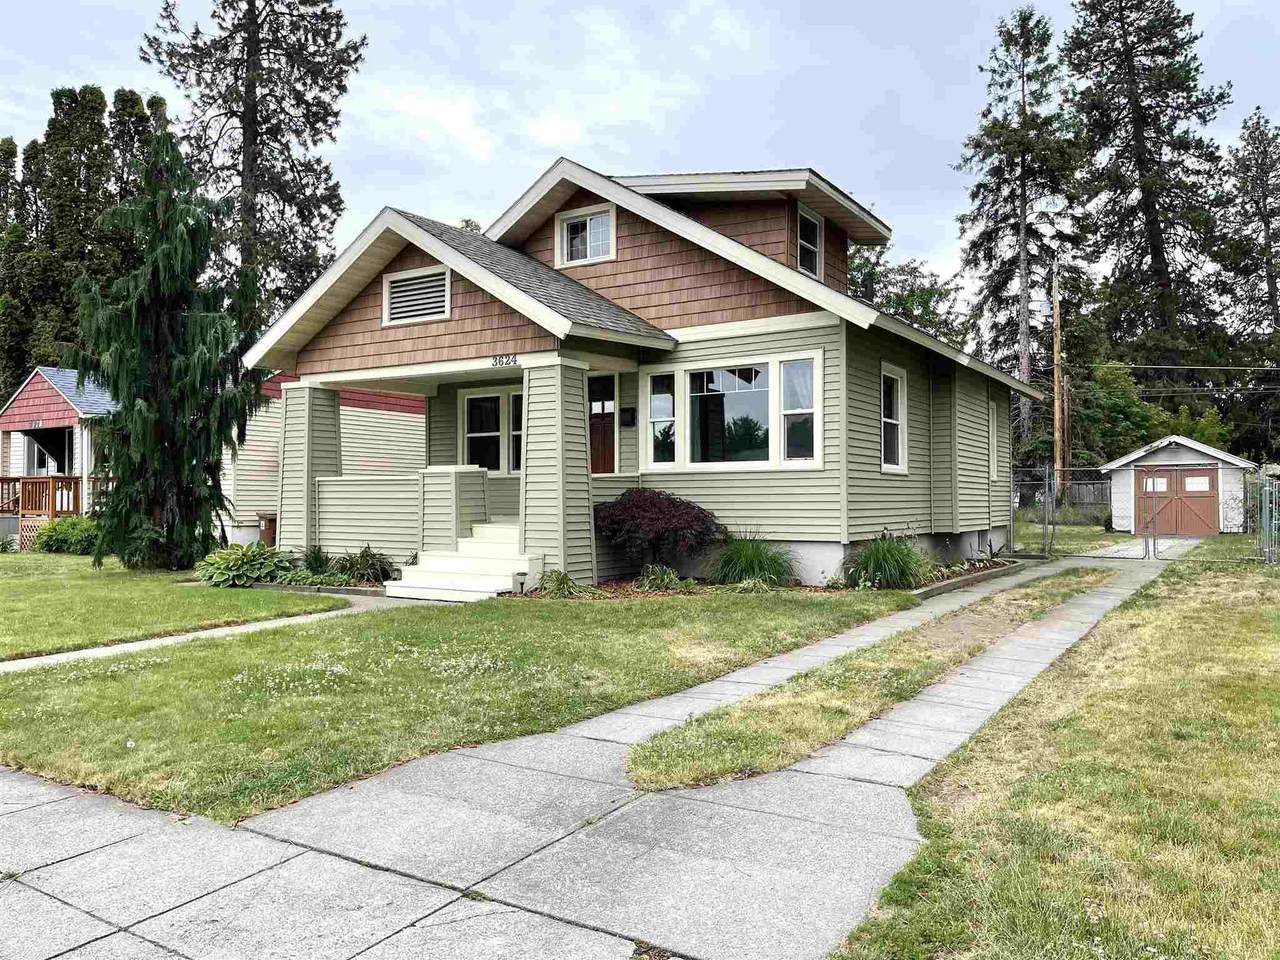 3624 6th Ave - Photo 1